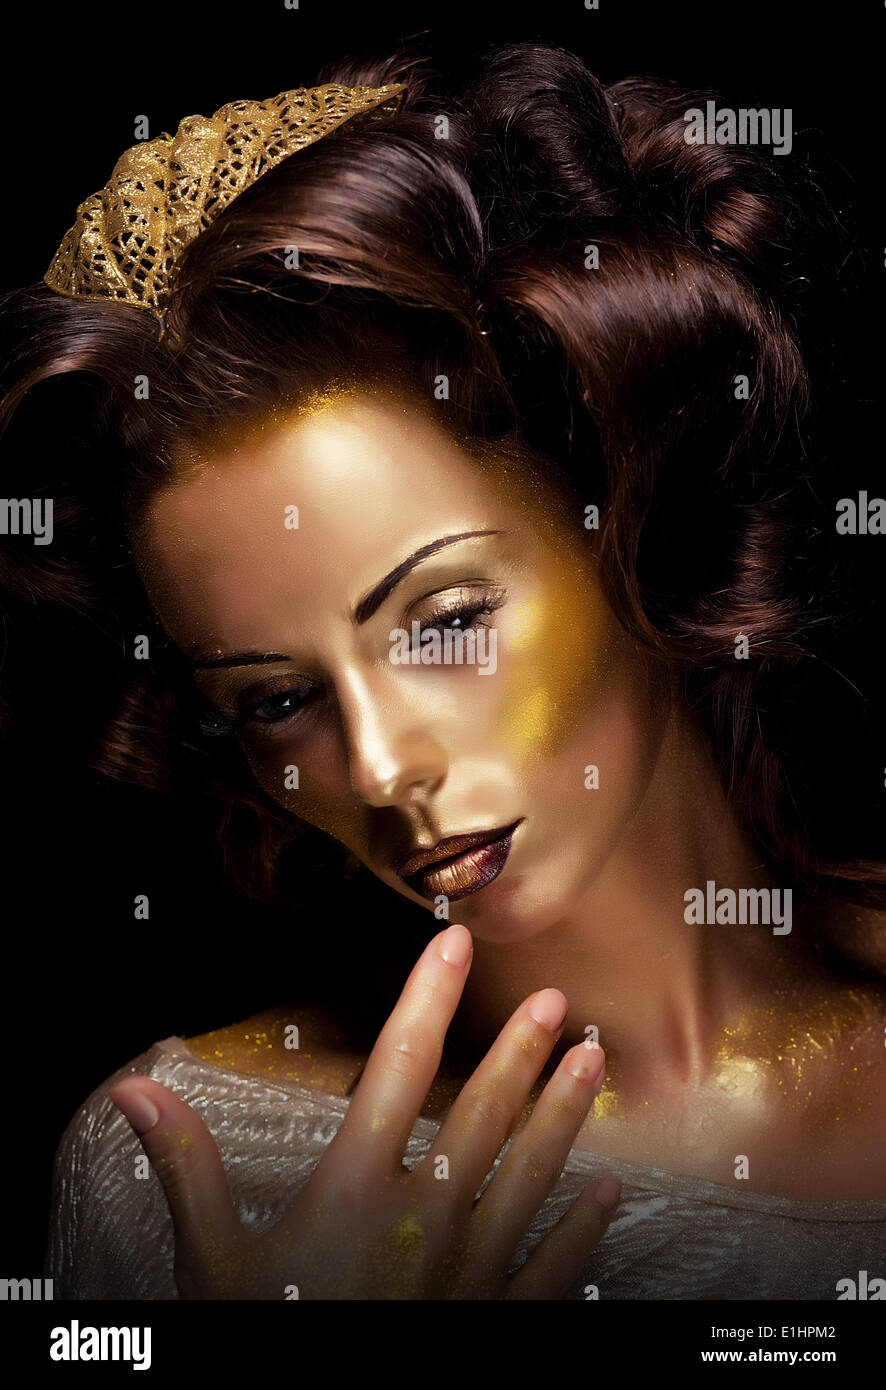 Paint. Fantasy. Glamor. Creative gold make-up, beauty woman face and fashion style - Stock Image